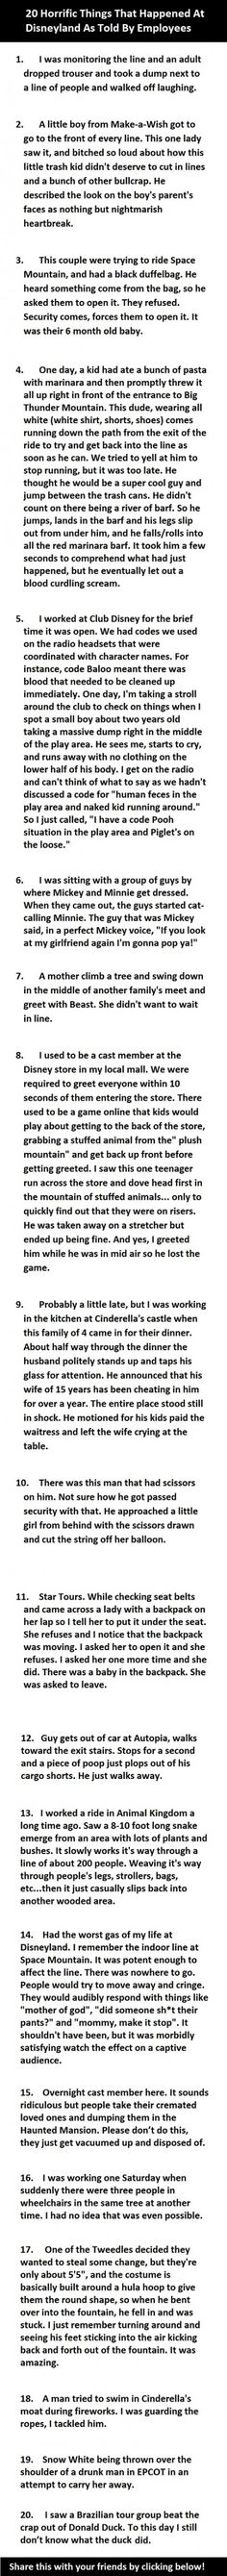 This Guy Just Changed The Way We See Harry Potter. Mind Blowing.